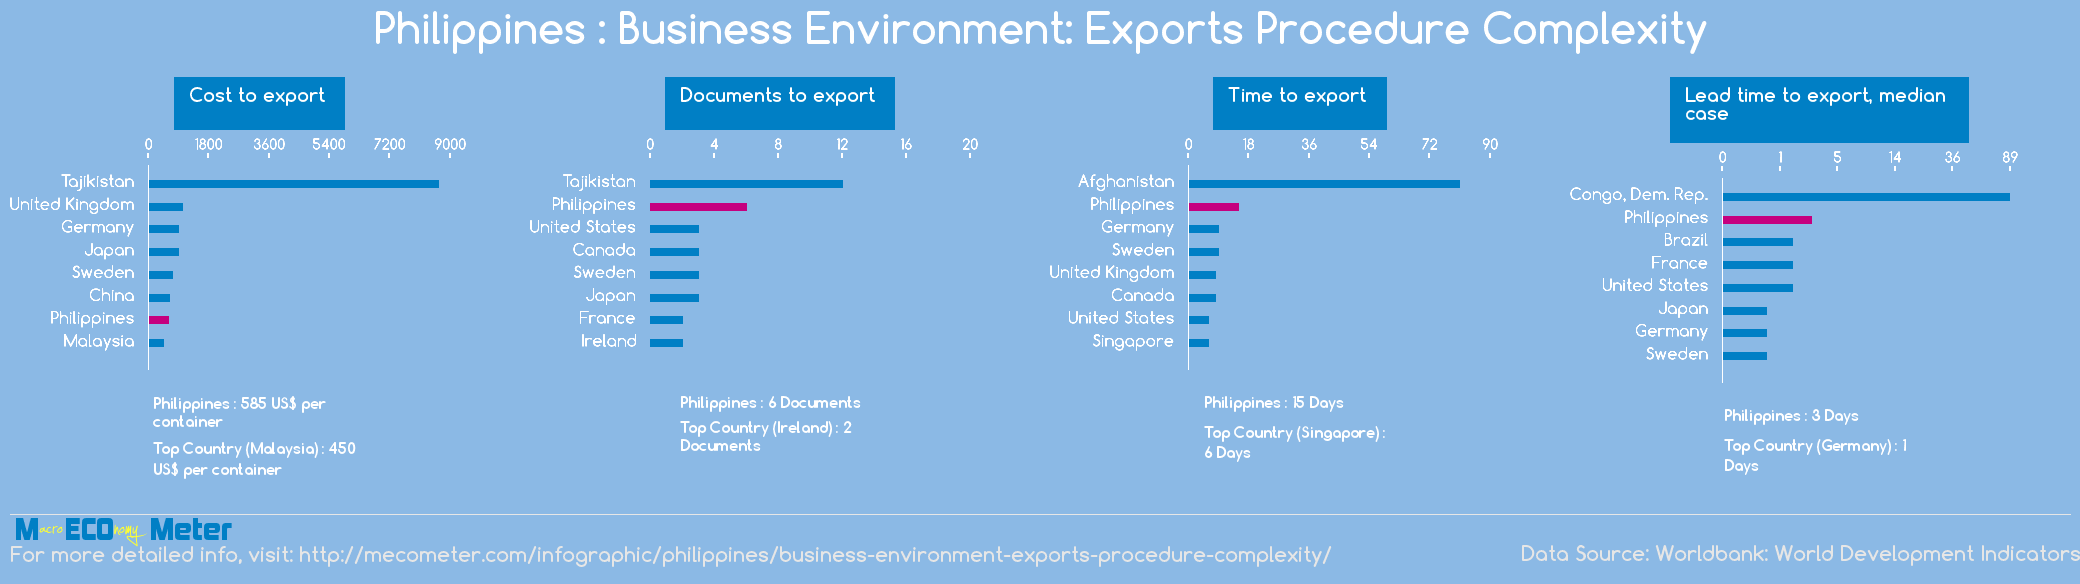 Philippines : Business Environment: Exports Procedure Complexity